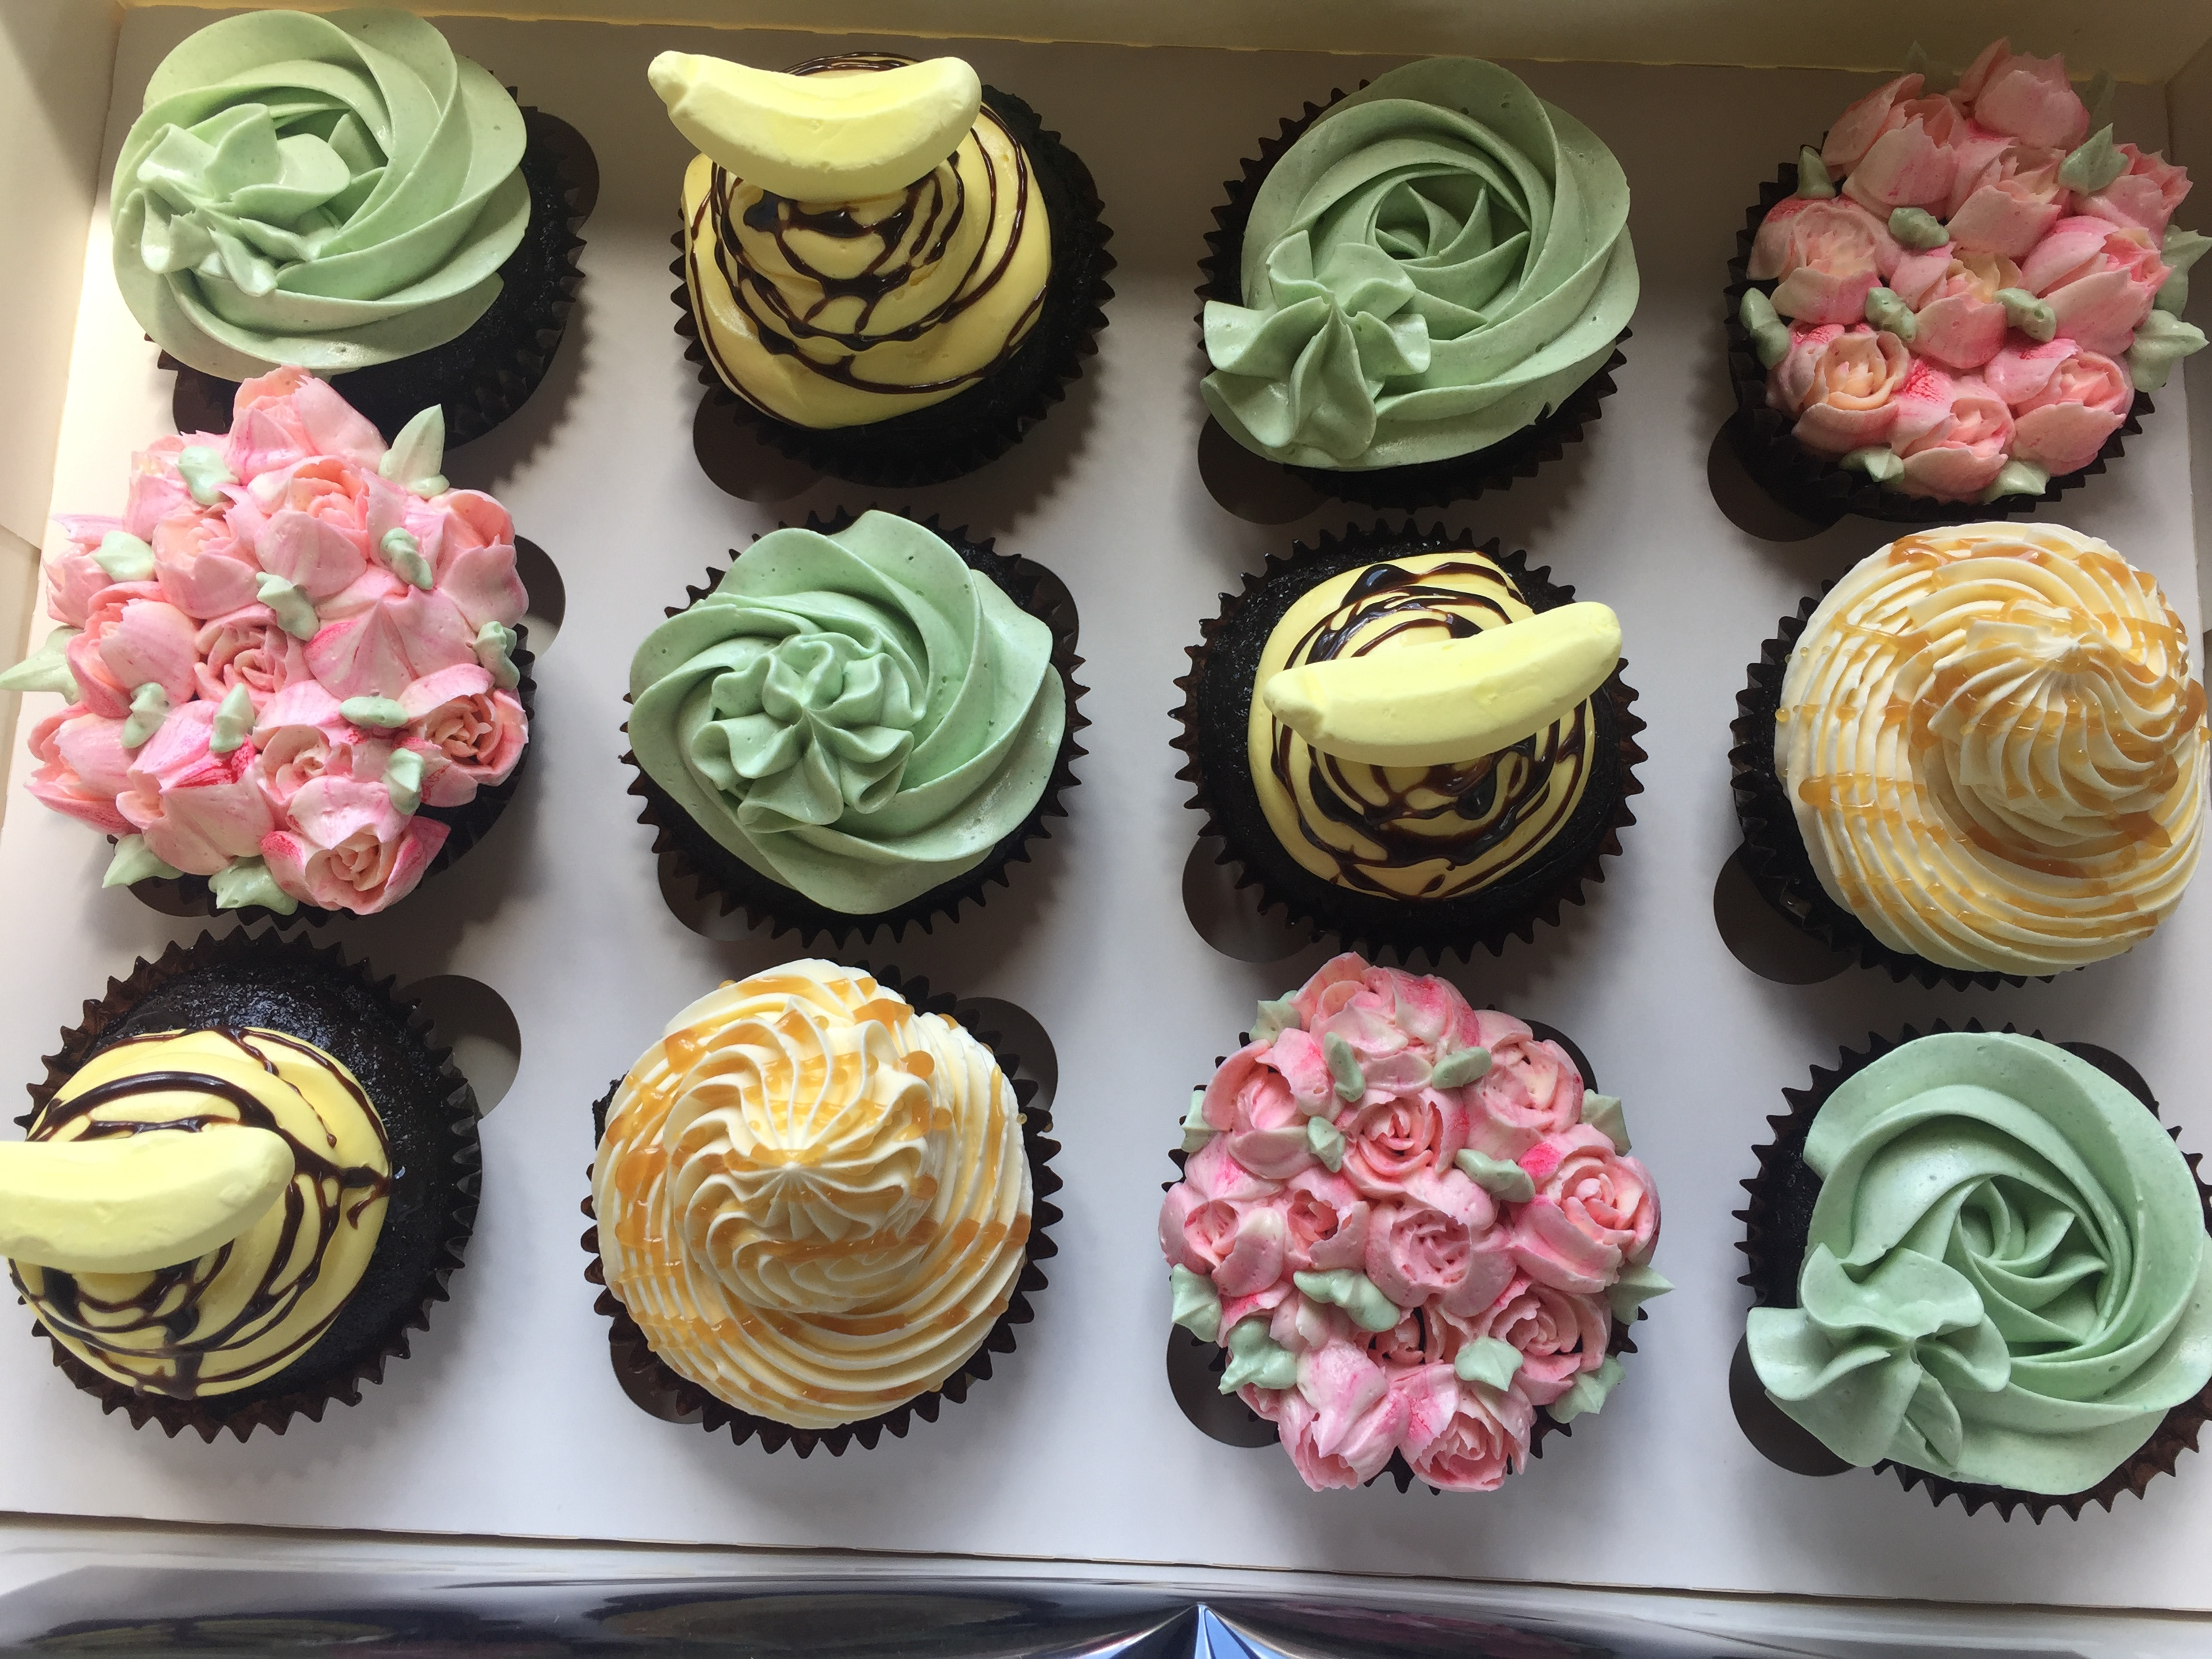 Mixed Flavours Cupcakes